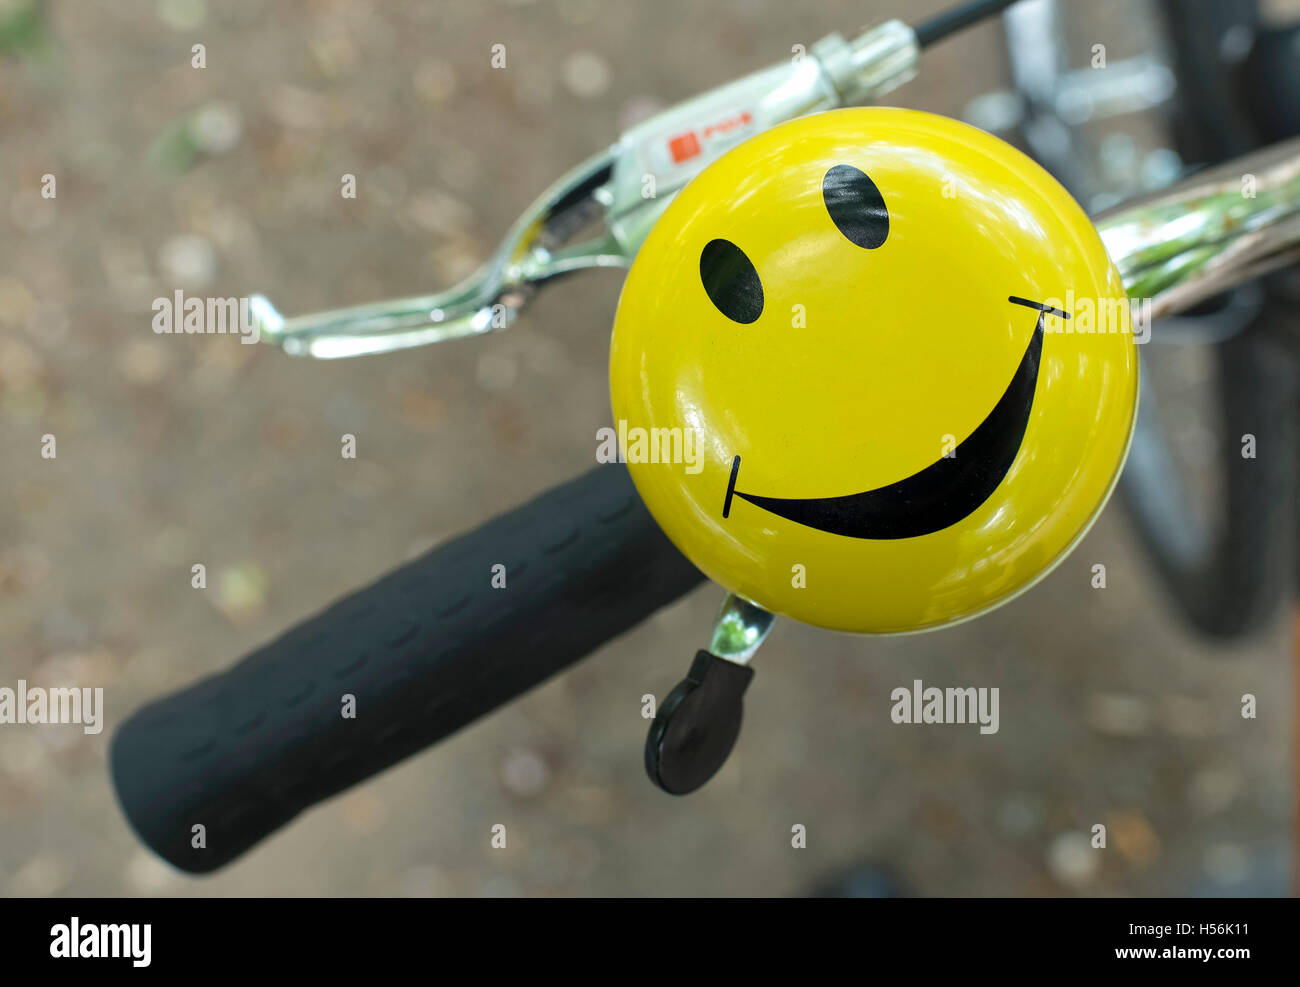 Bicycle handlebars with bell with laughing smiley - Stock Image